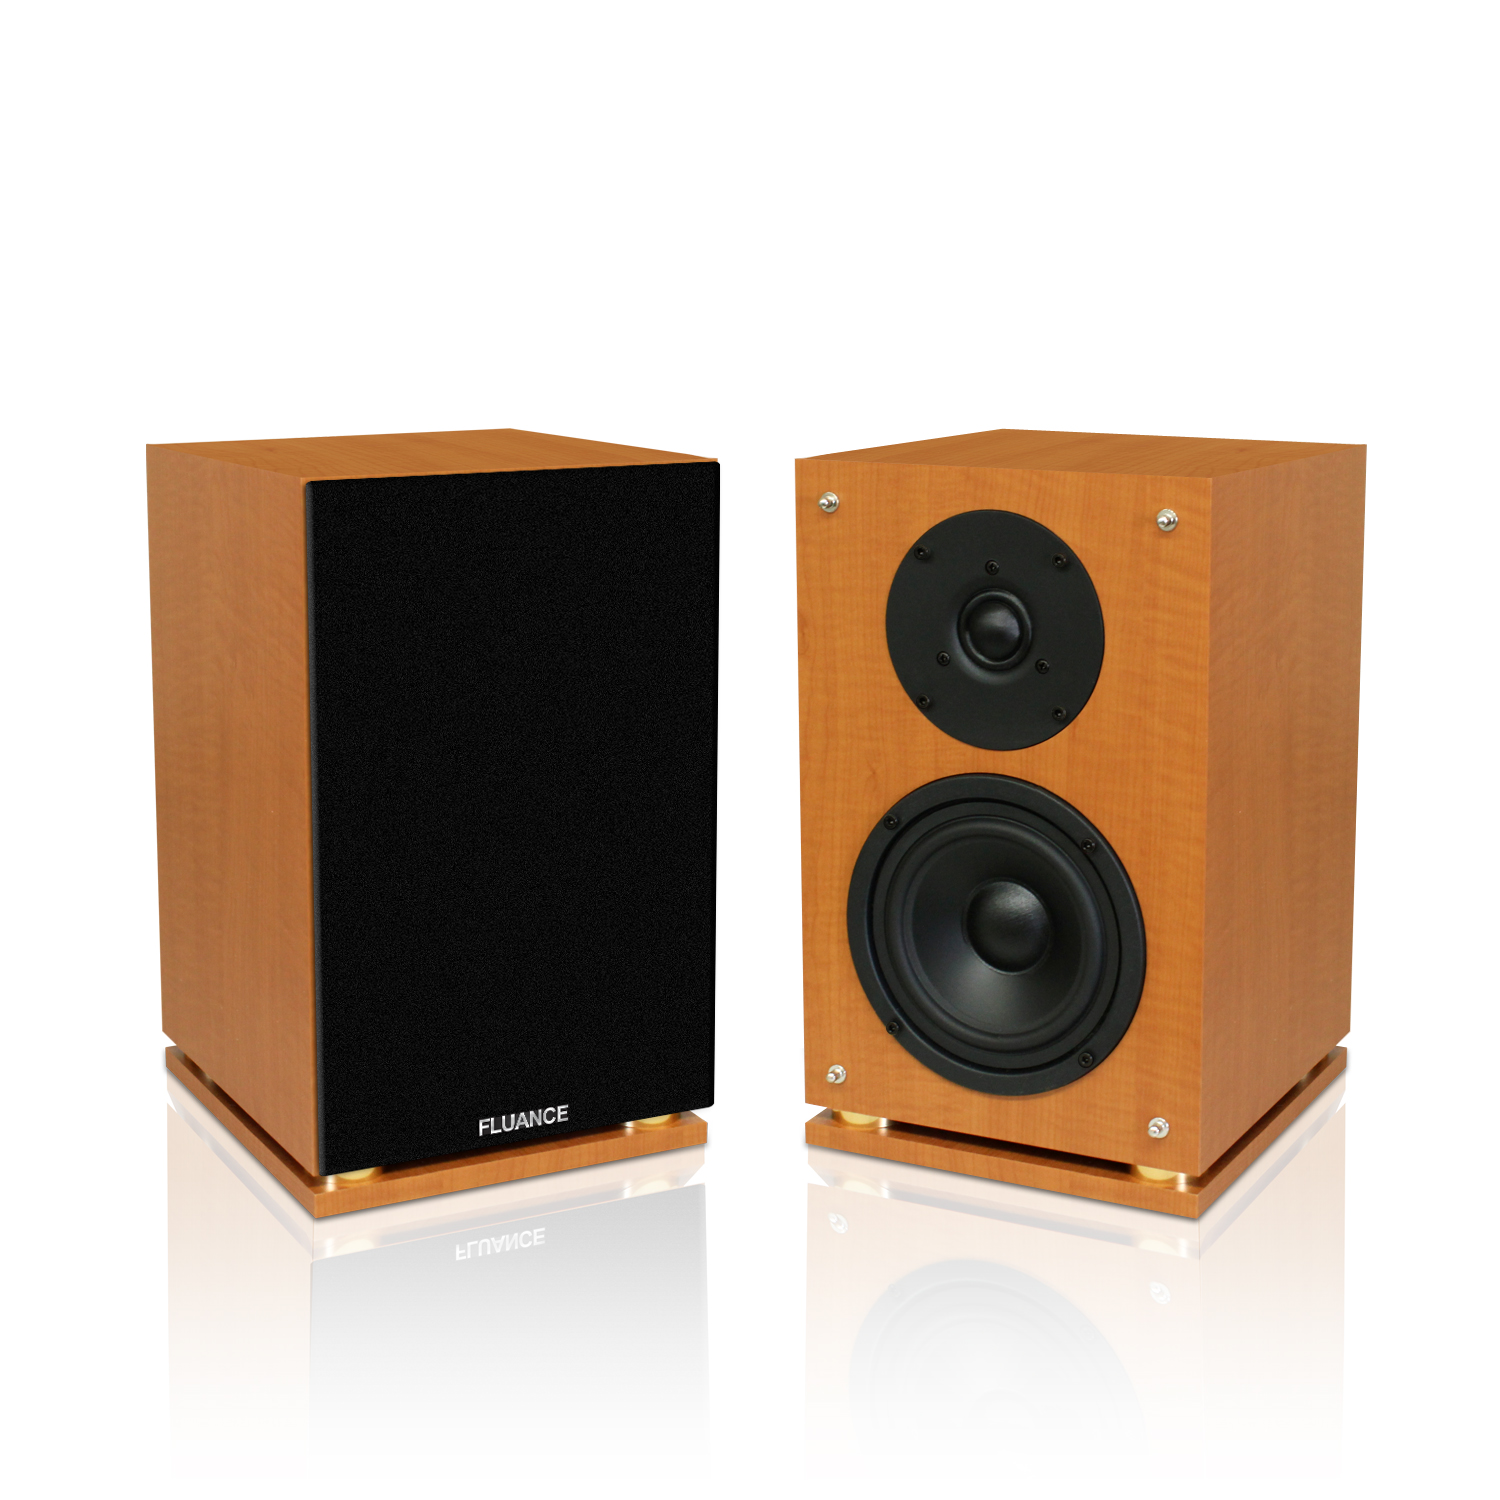 SX6 High Definition Two-way Bookshelf Loudspeakers